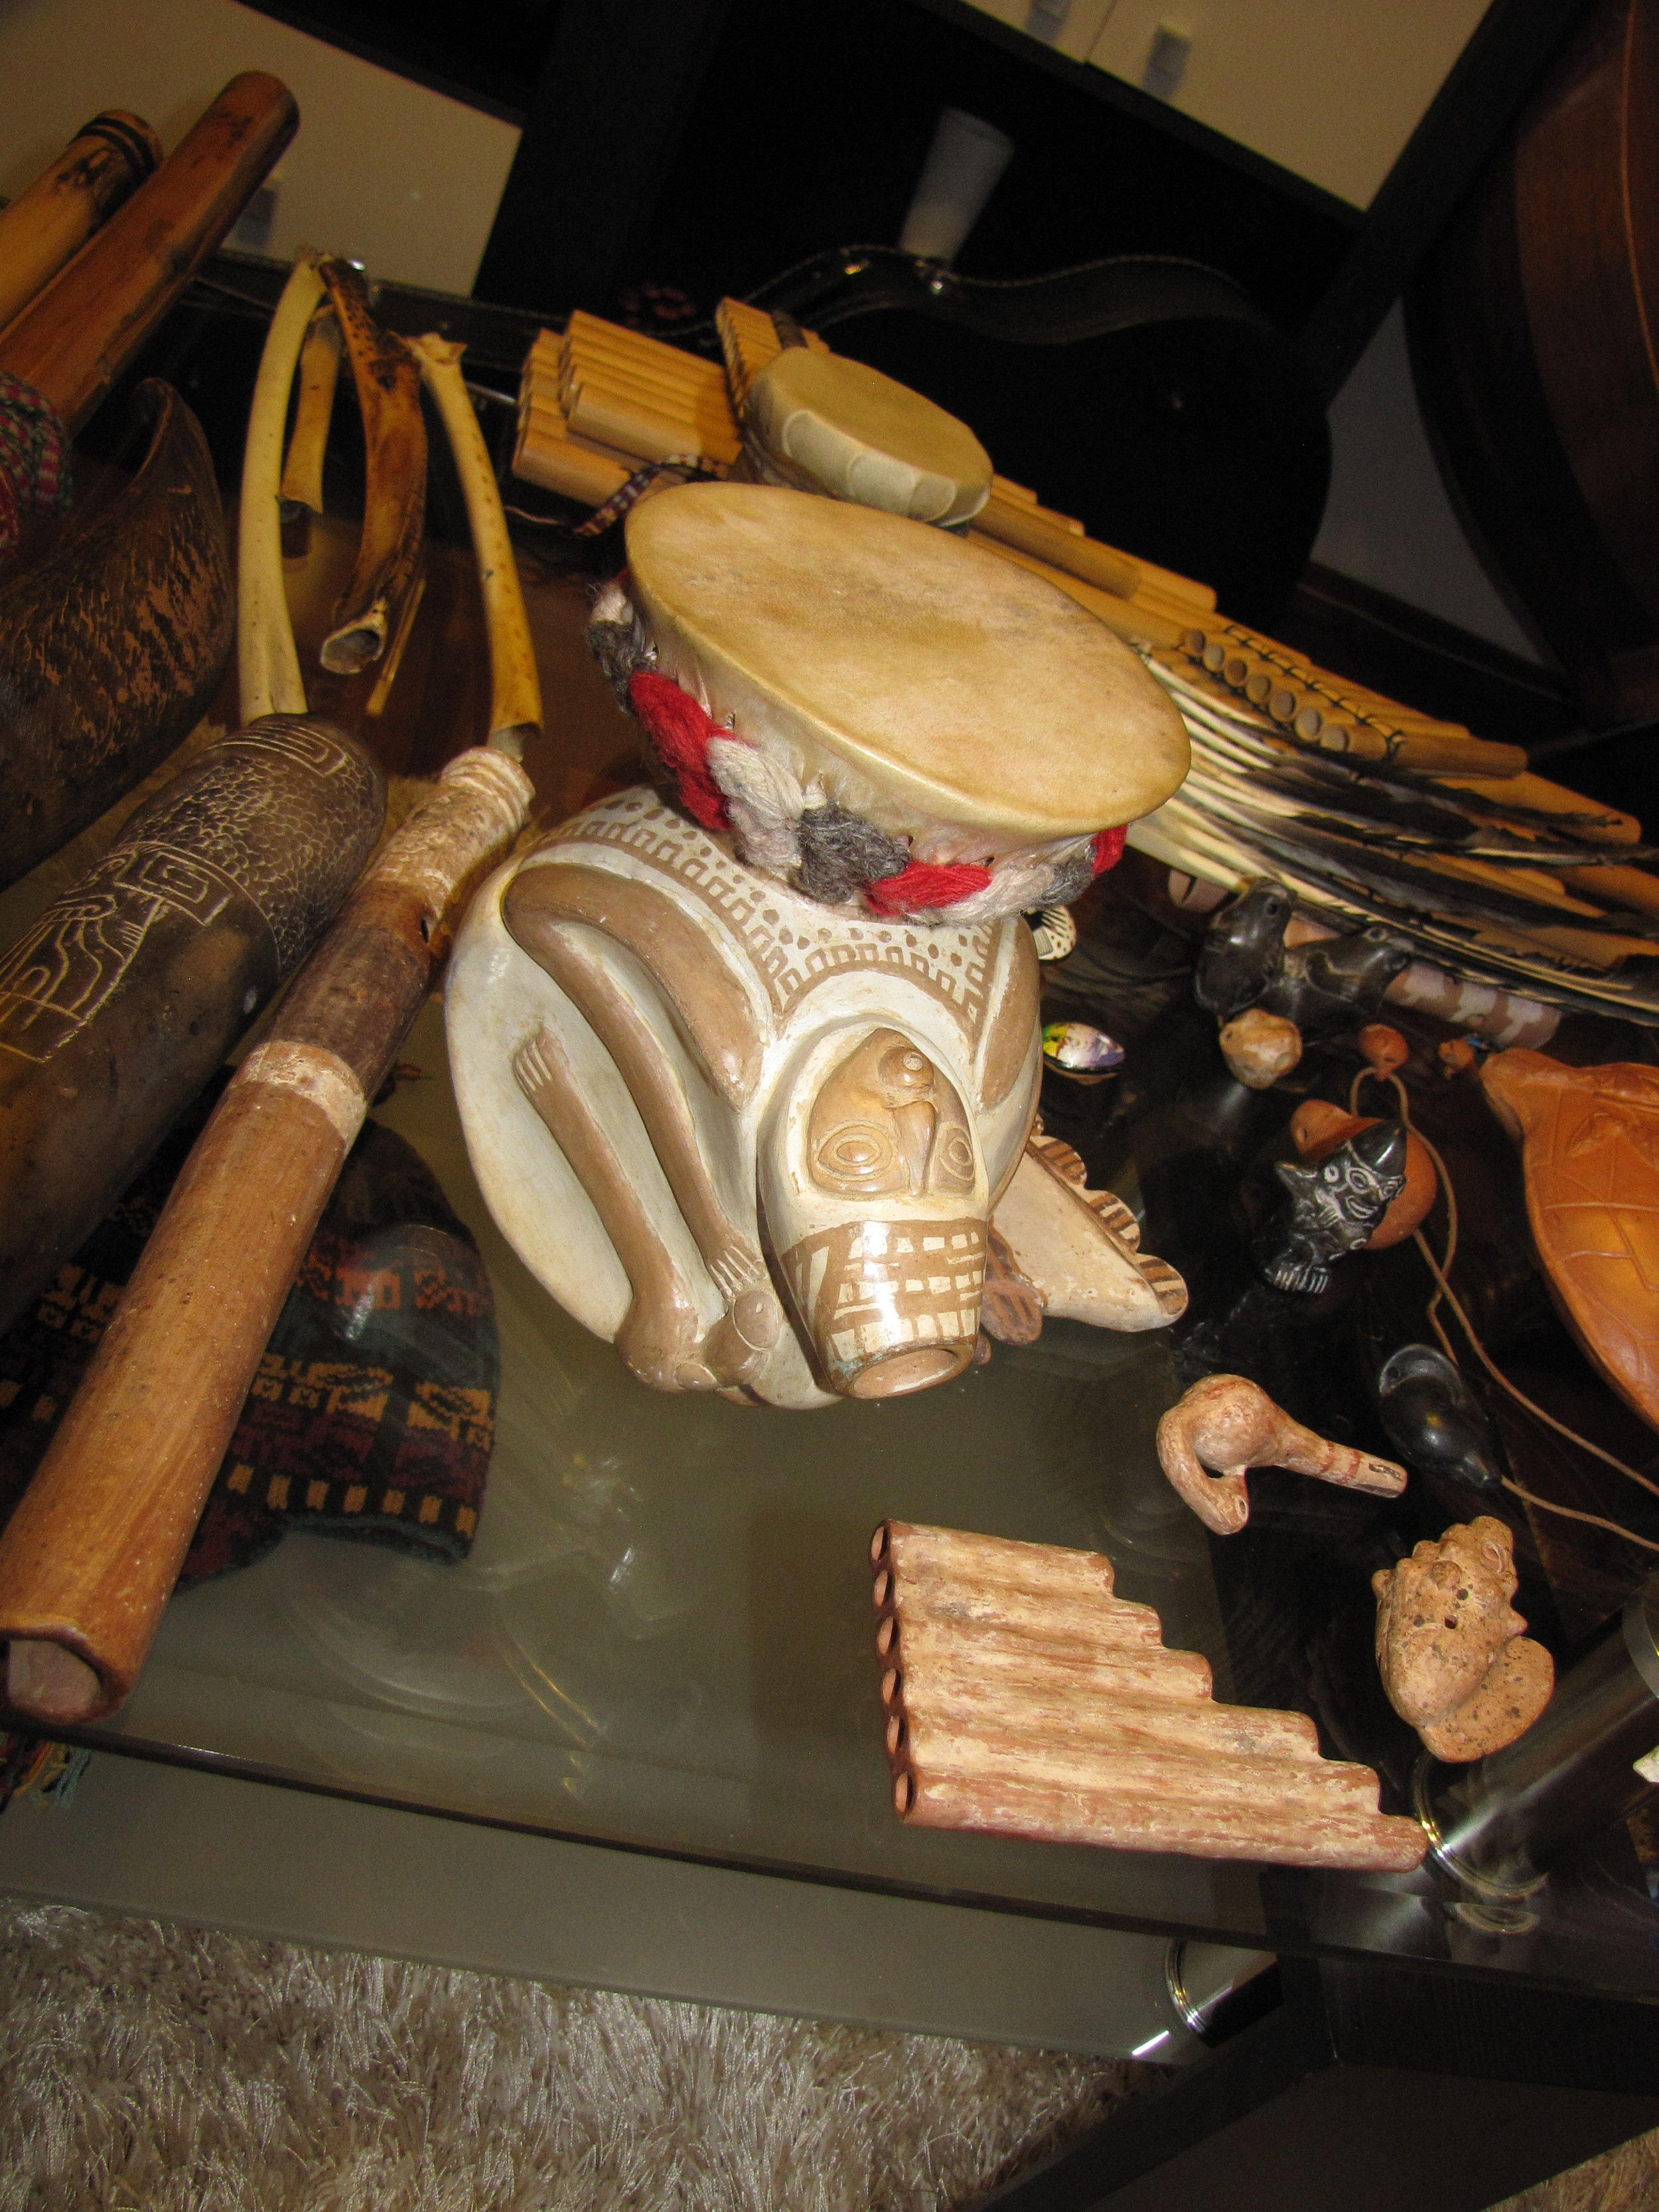 A beautiful clay drum and other instruments